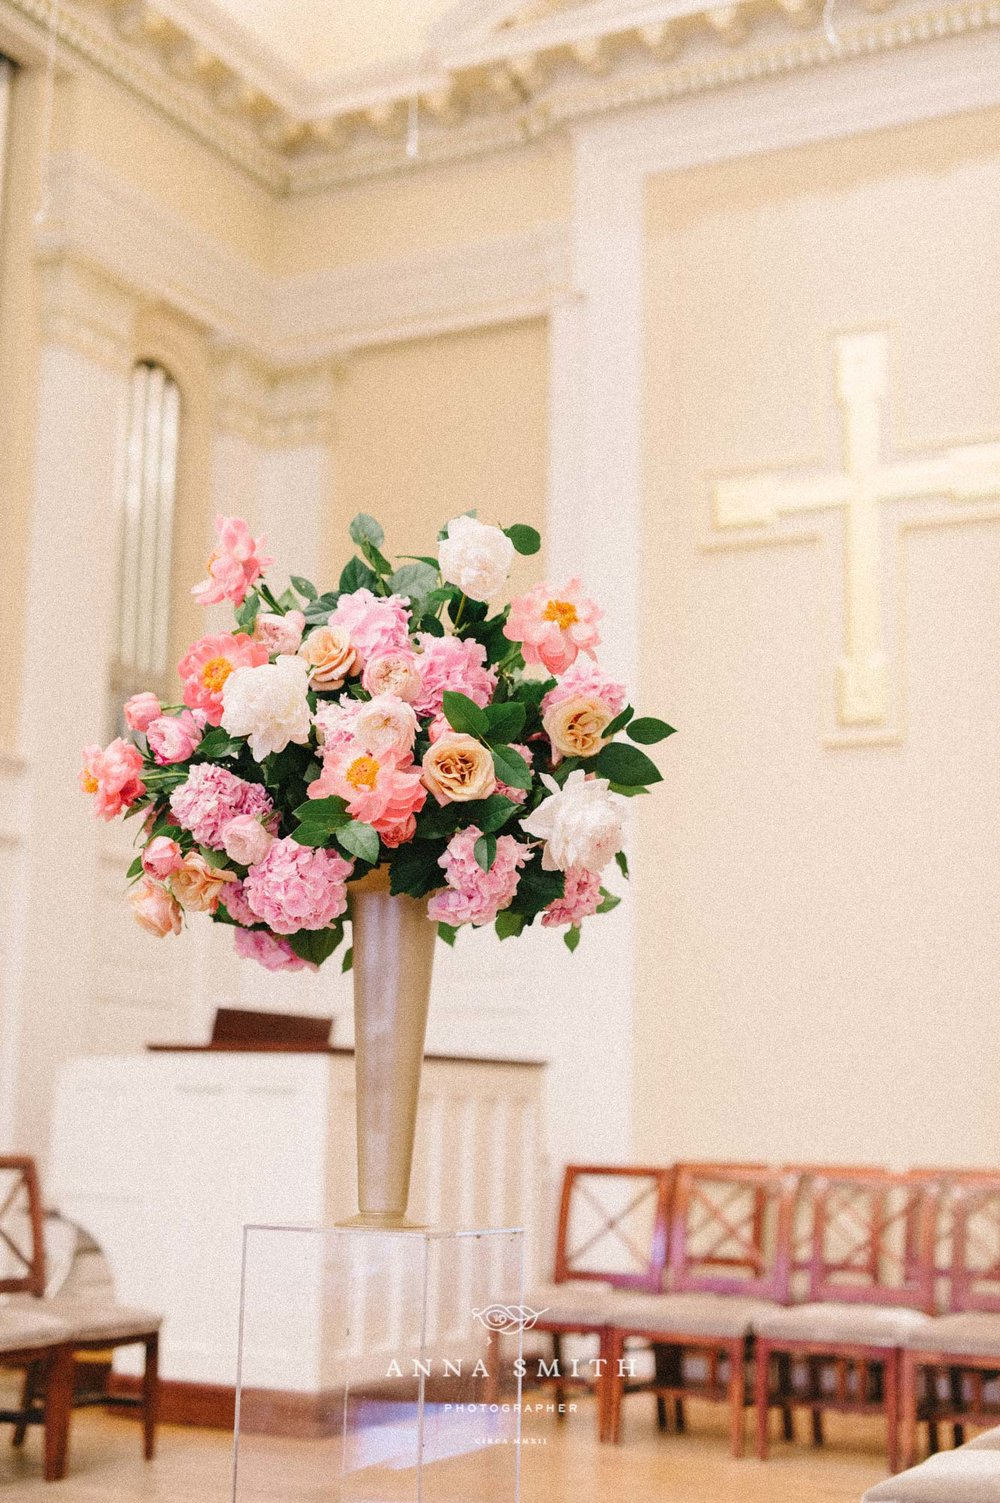 Tall pink garden style arrangement in church ceremony